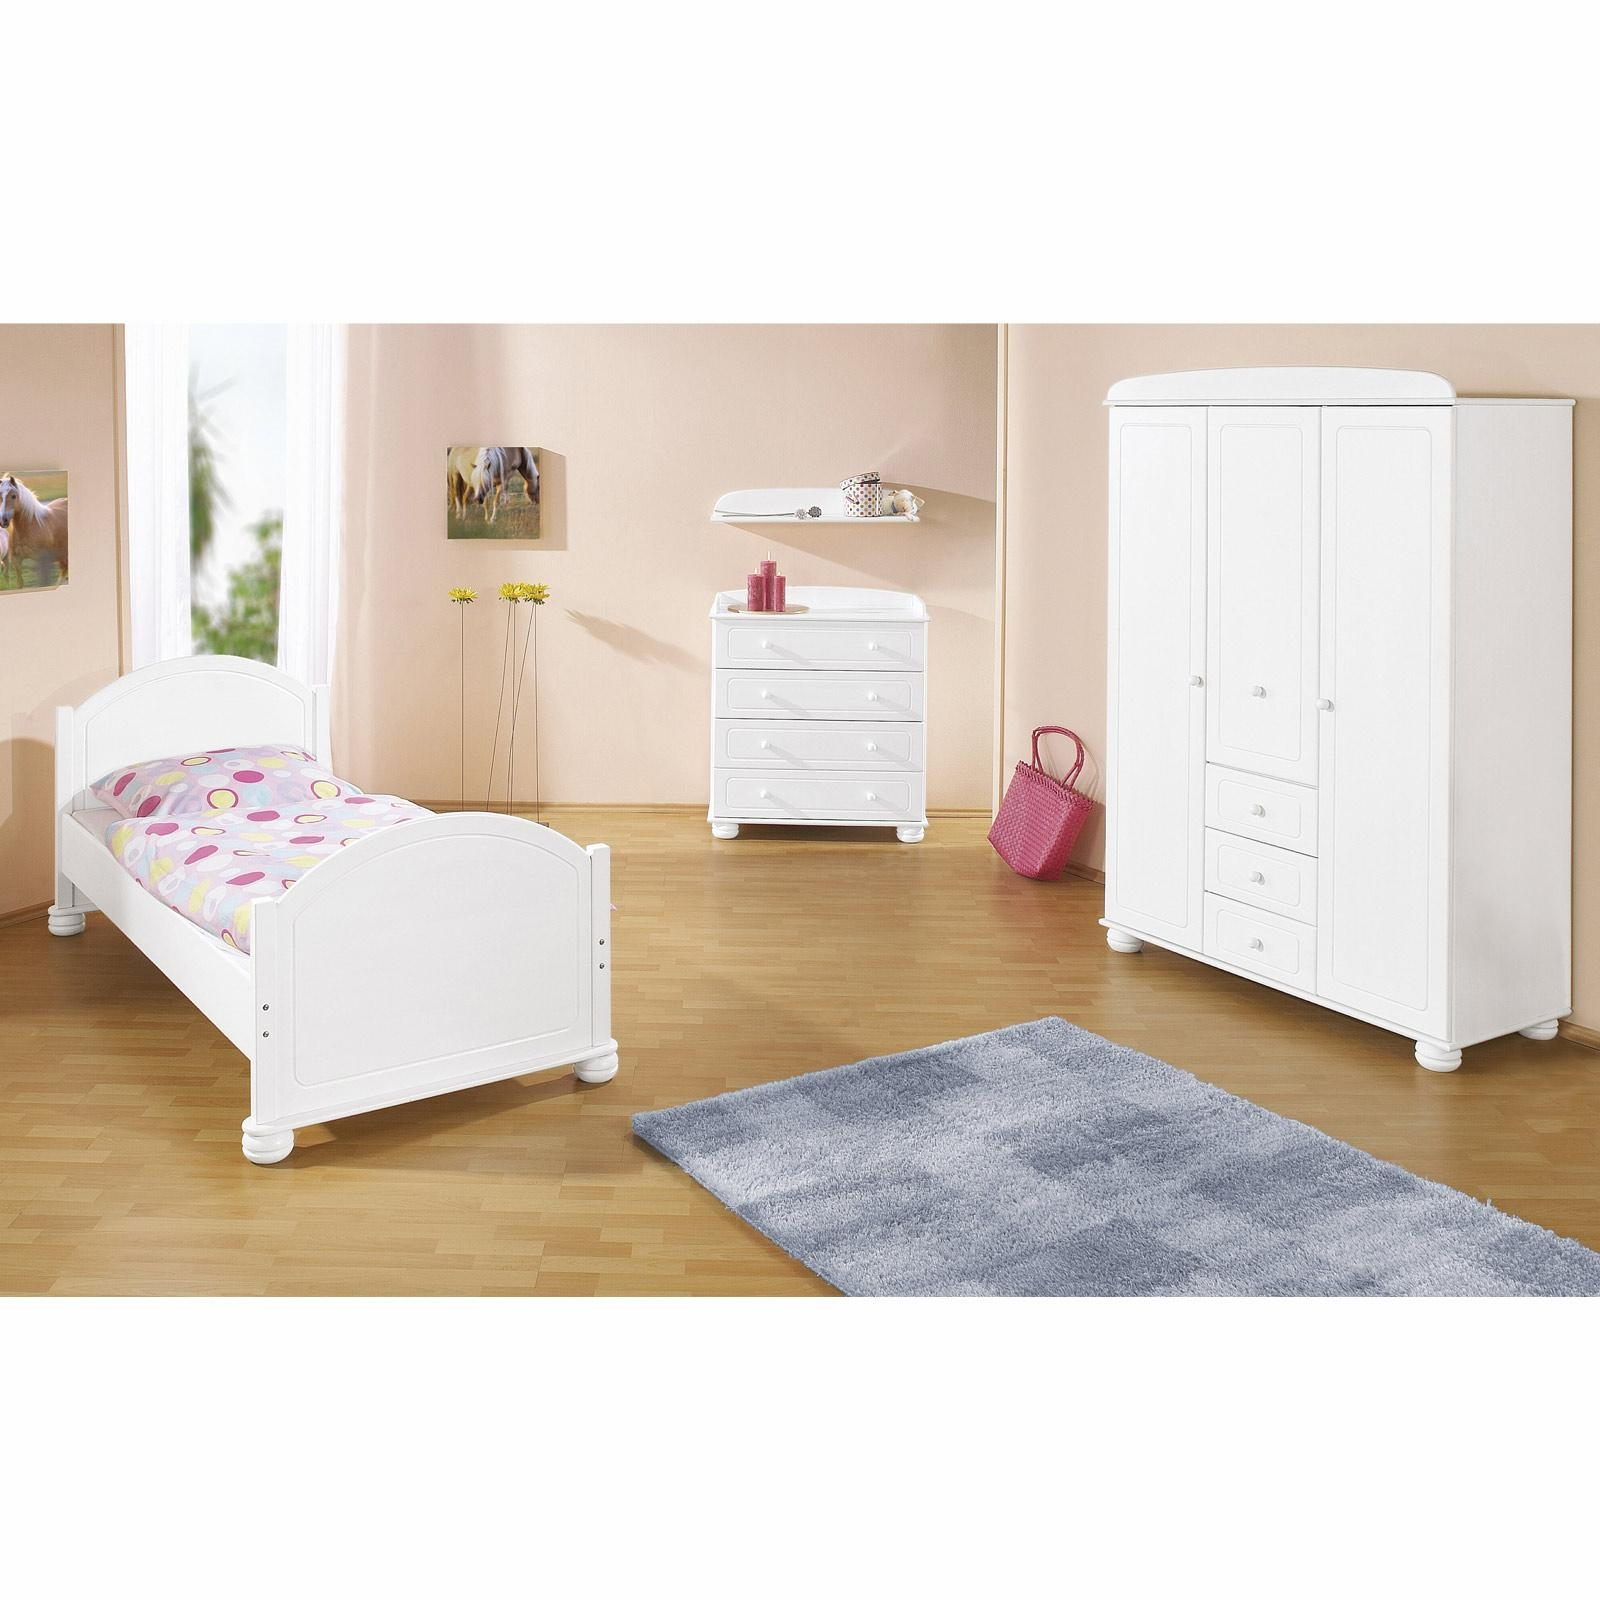 les tendances chambre enfant bois massif lasur blanc. Black Bedroom Furniture Sets. Home Design Ideas